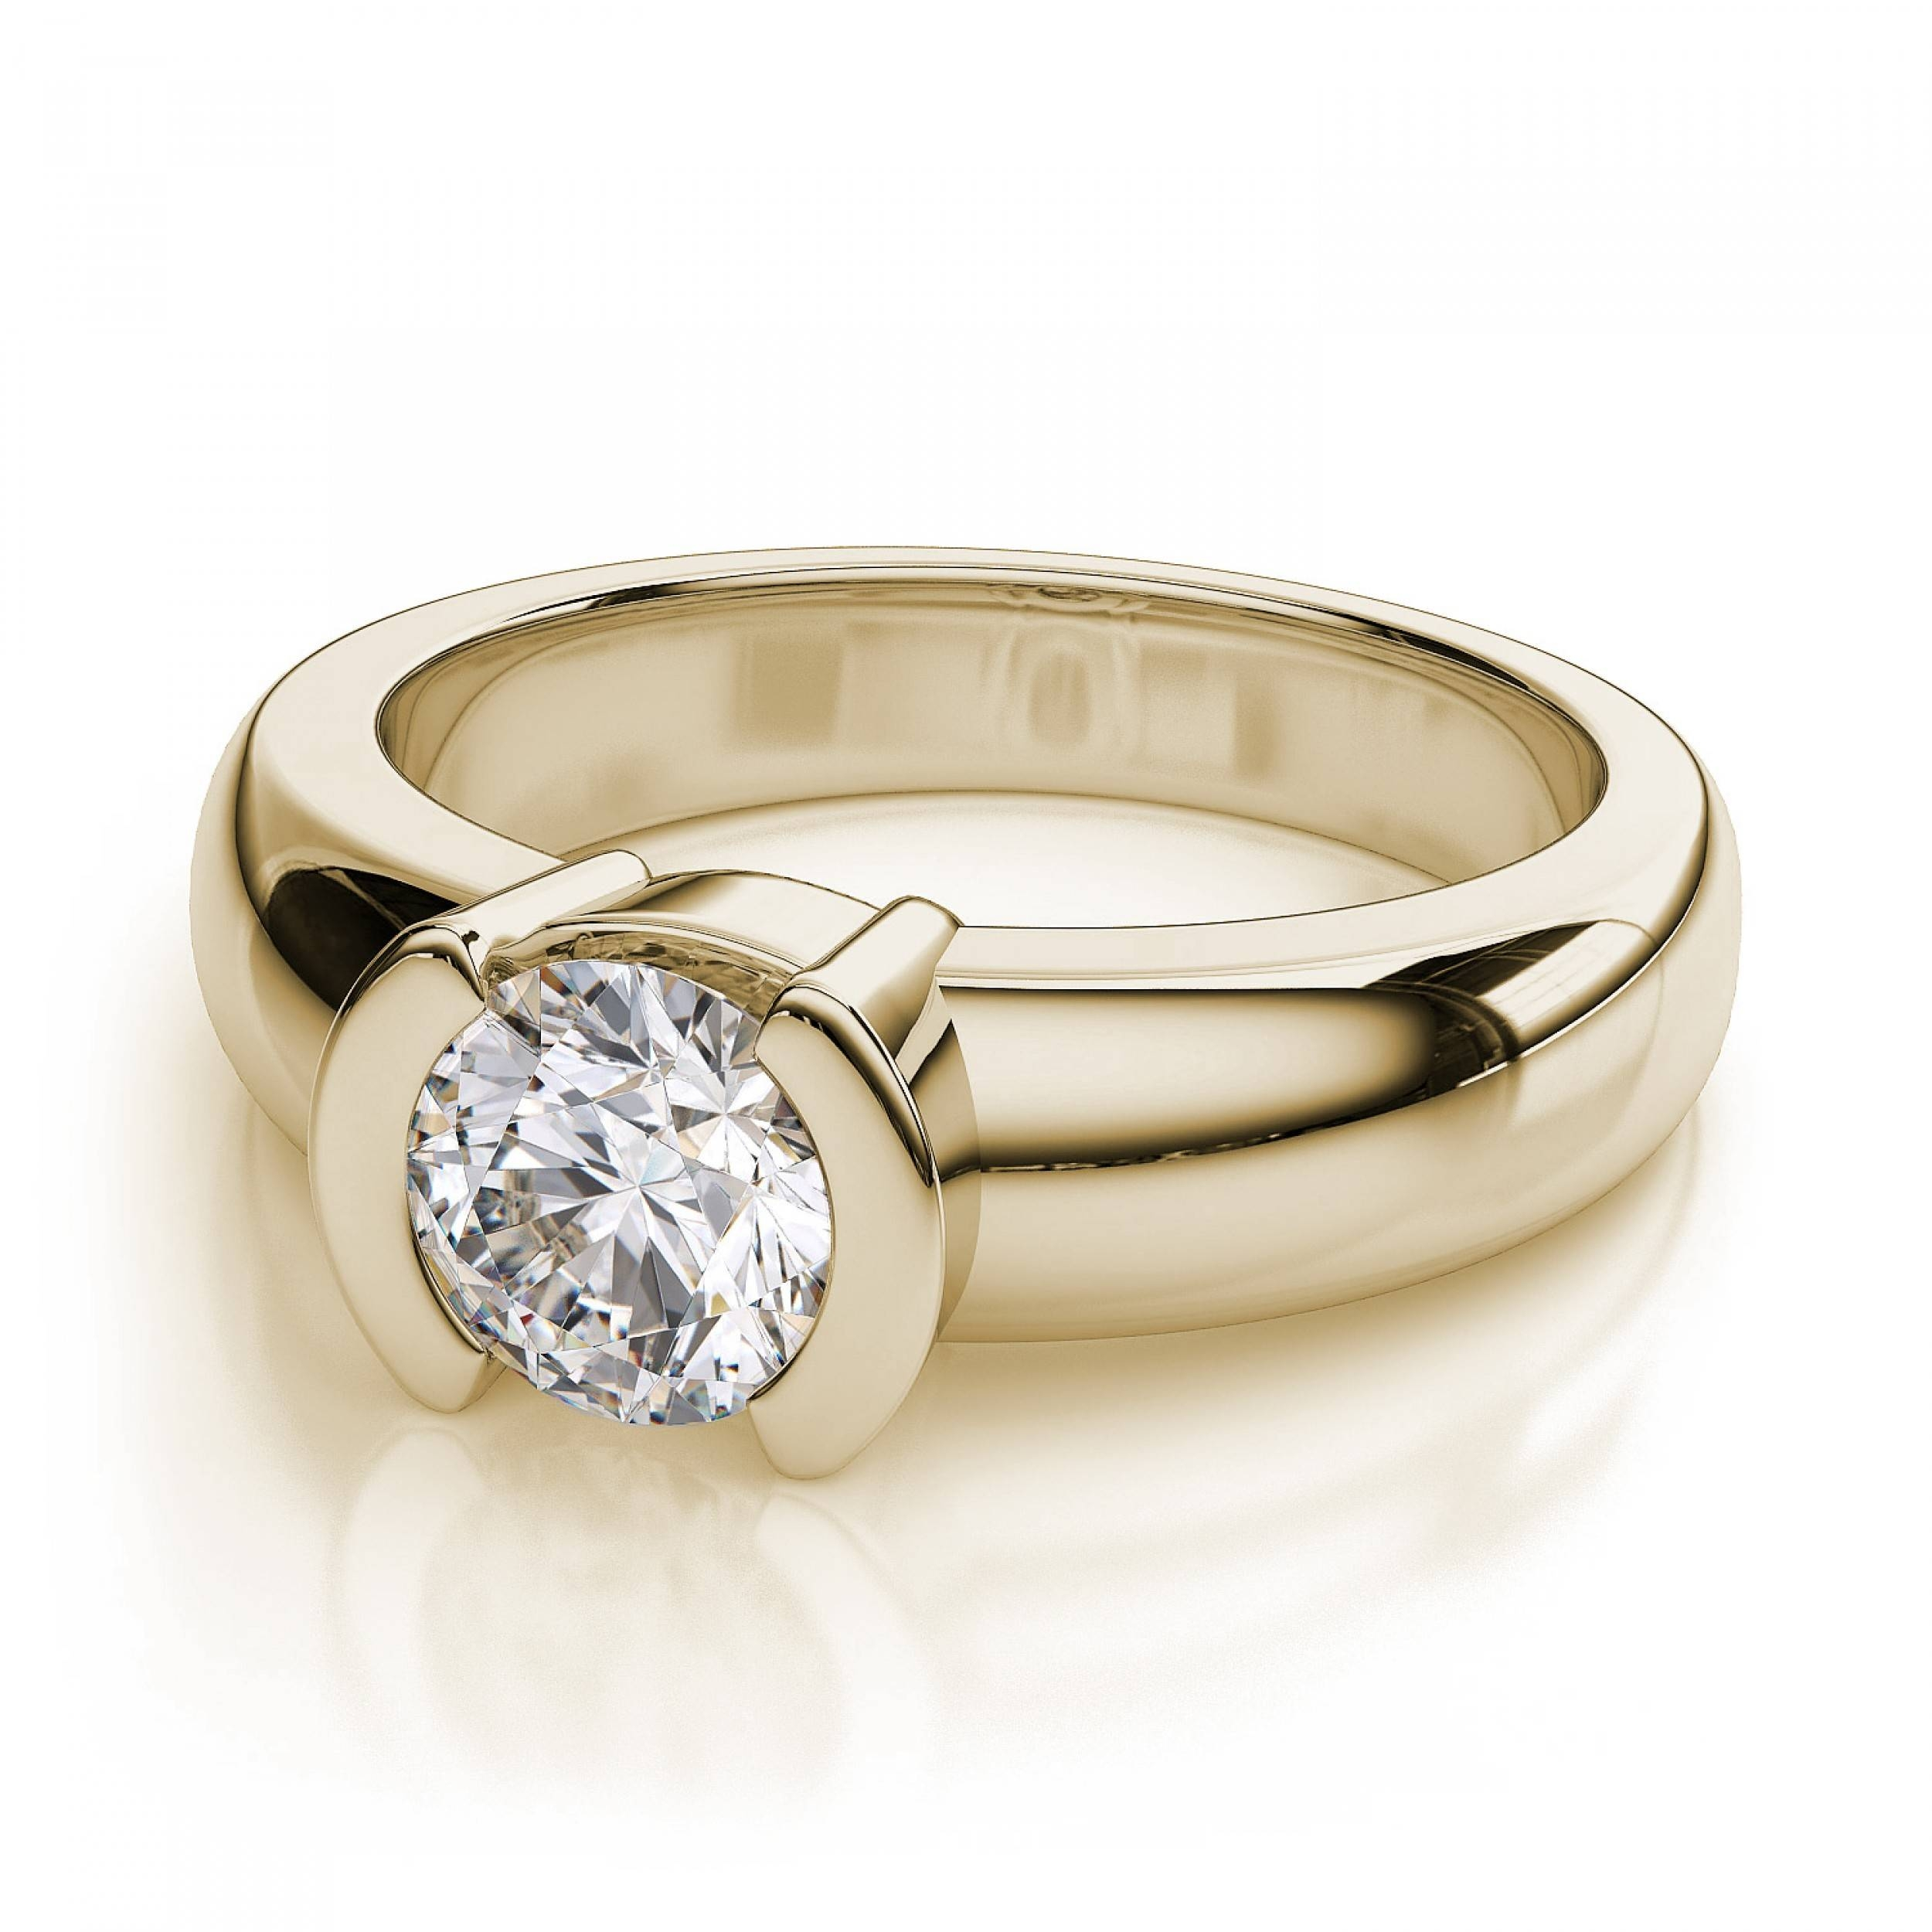 Set Solitaire Diamond Engagement Ring – 18K Yellow Gold Regarding Engagement Rings 18K Yellow Gold (View 11 of 15)